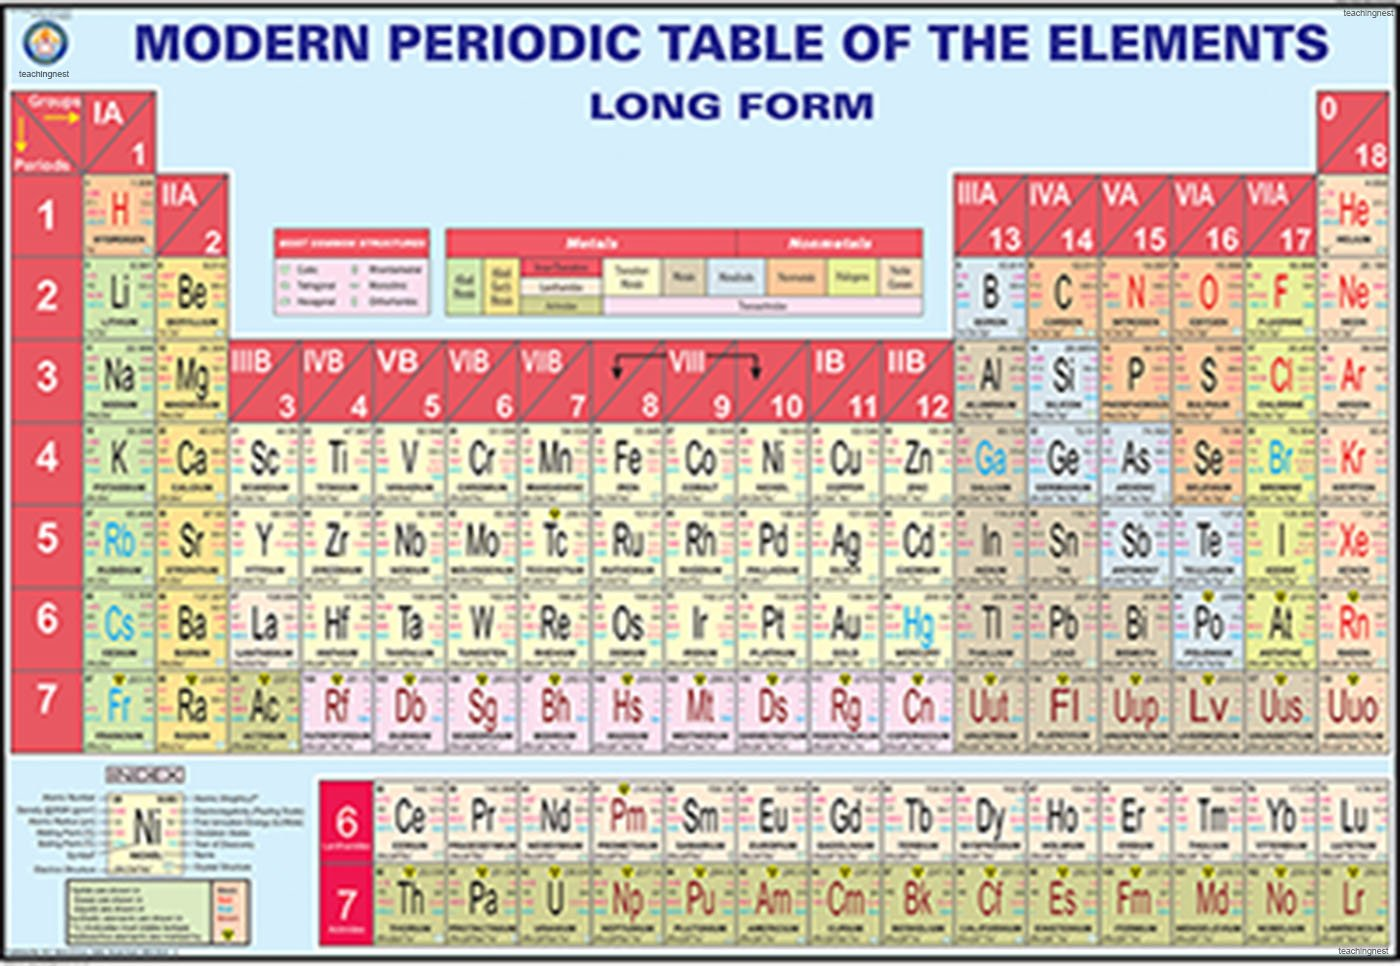 Buy modern periodic table of the elements chart 100x70cm book buy modern periodic table of the elements chart 100x70cm book online at low prices in india modern periodic table of the elements chart 100x70cm gamestrikefo Gallery